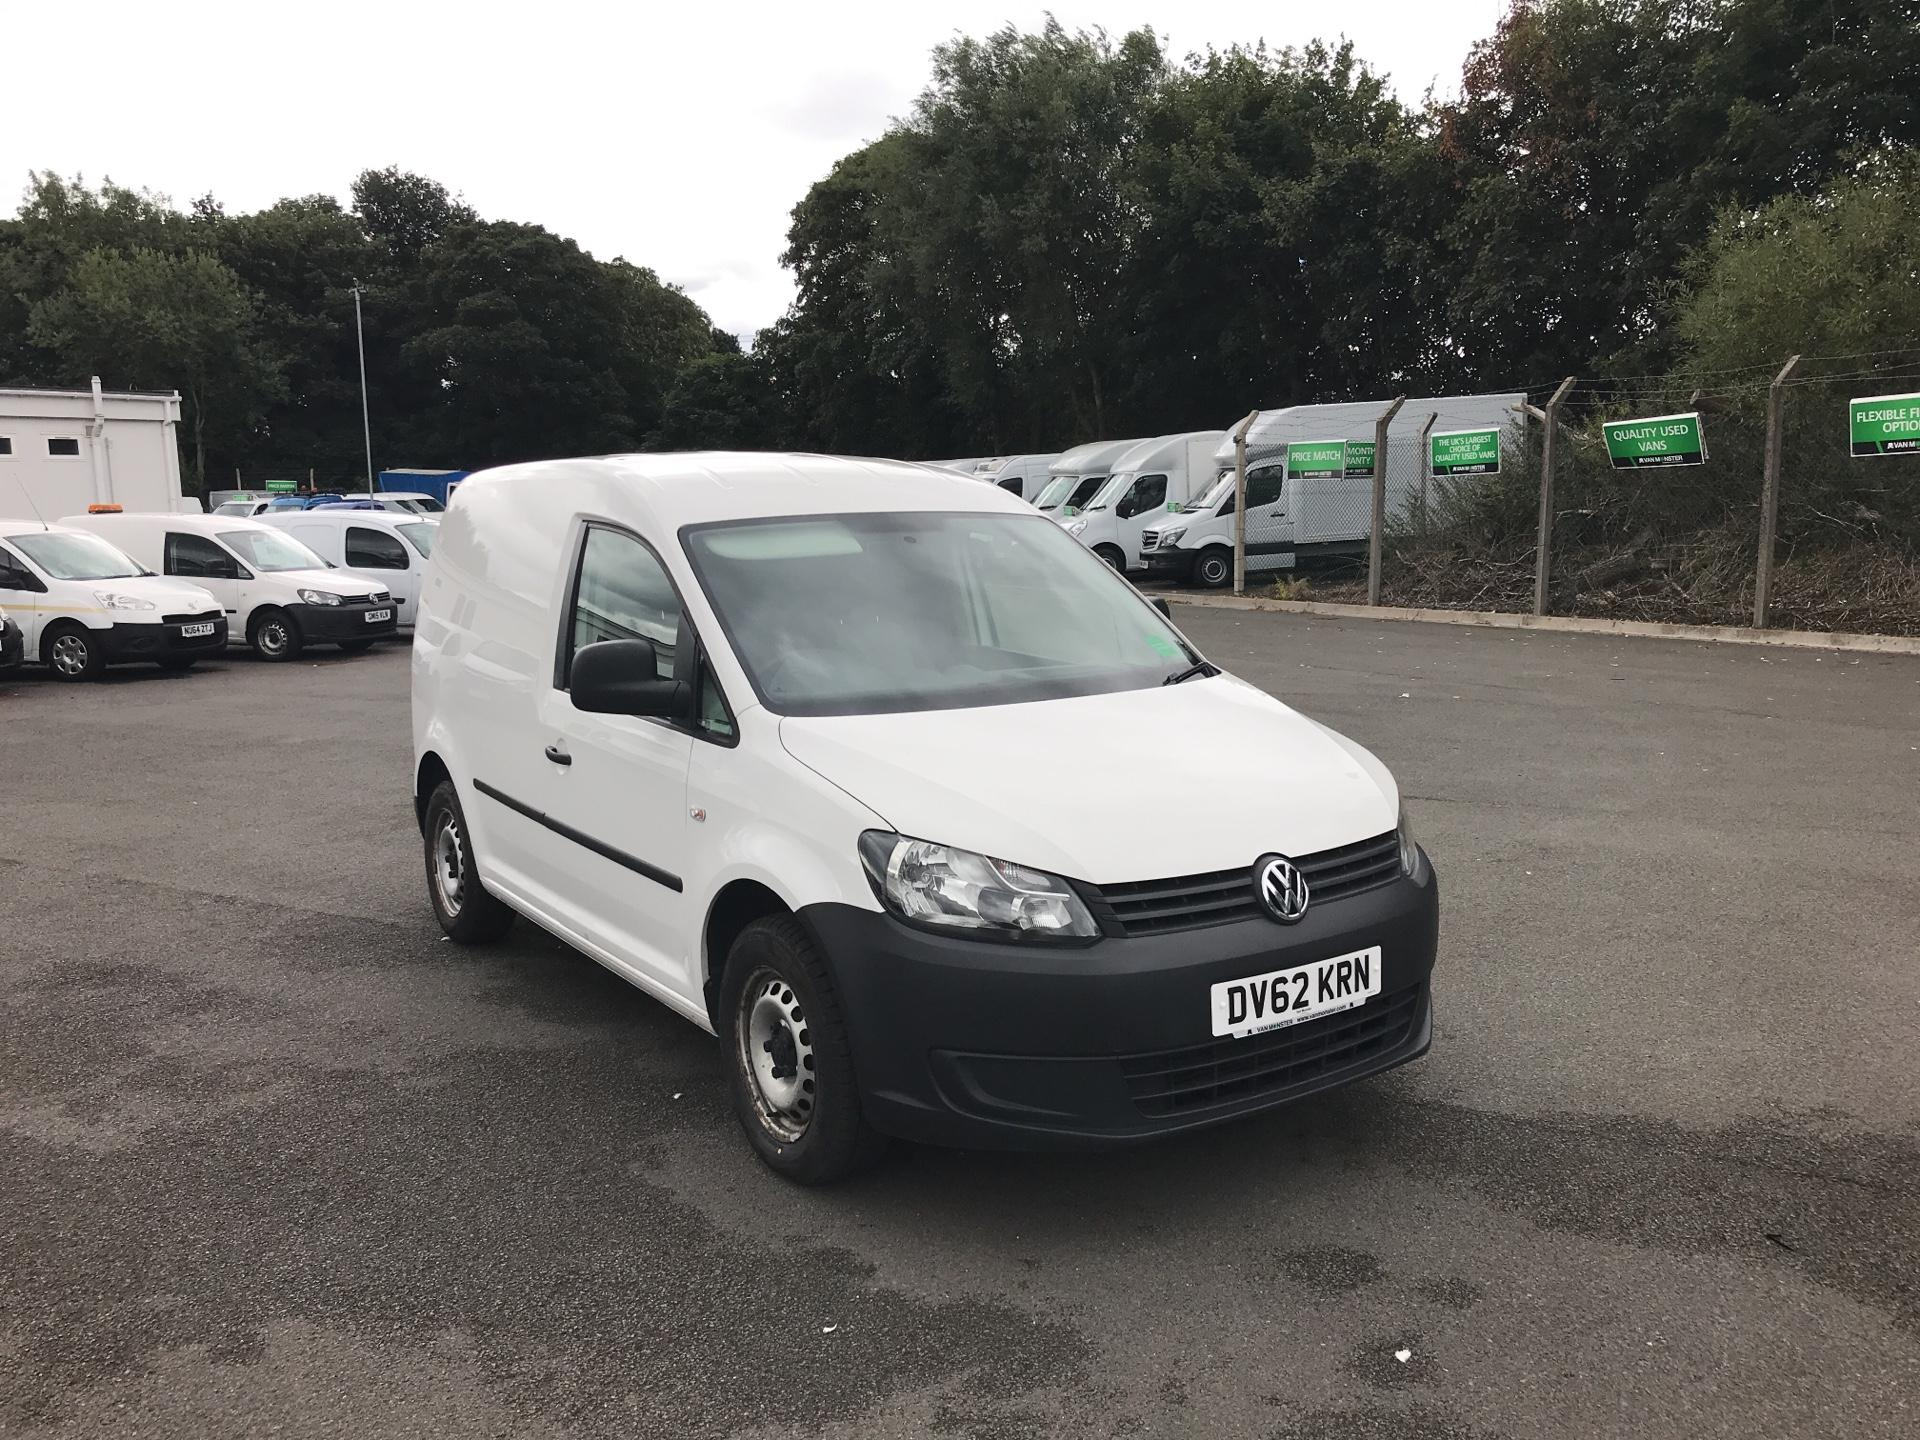 2012 Volkswagen Caddy 1.6 TDI 75PS VAN EURO 5 *VALUE RANGE VEHICLE - CONDITION REFLECTED IN PRICE* (DV62KRN)